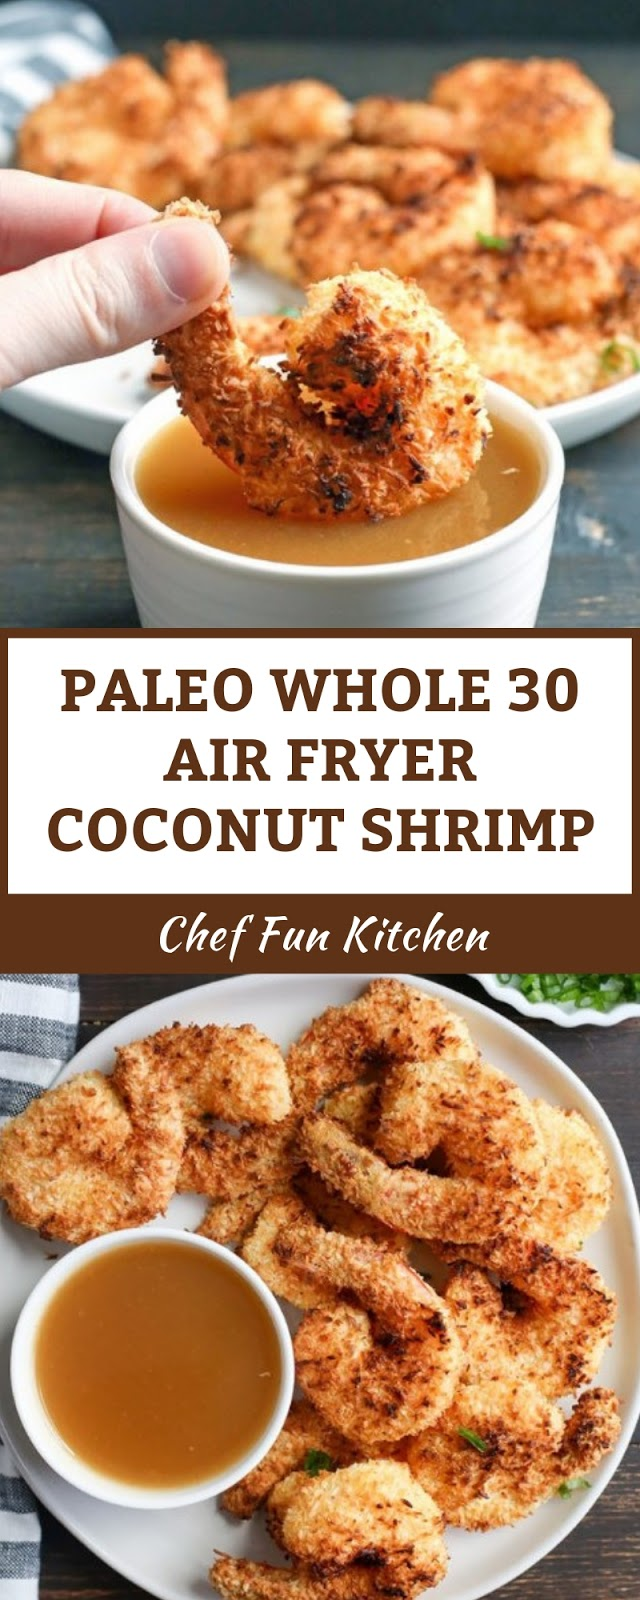 PALEO WHOLE 30 AIR FRYER COCONUT SHRIMP